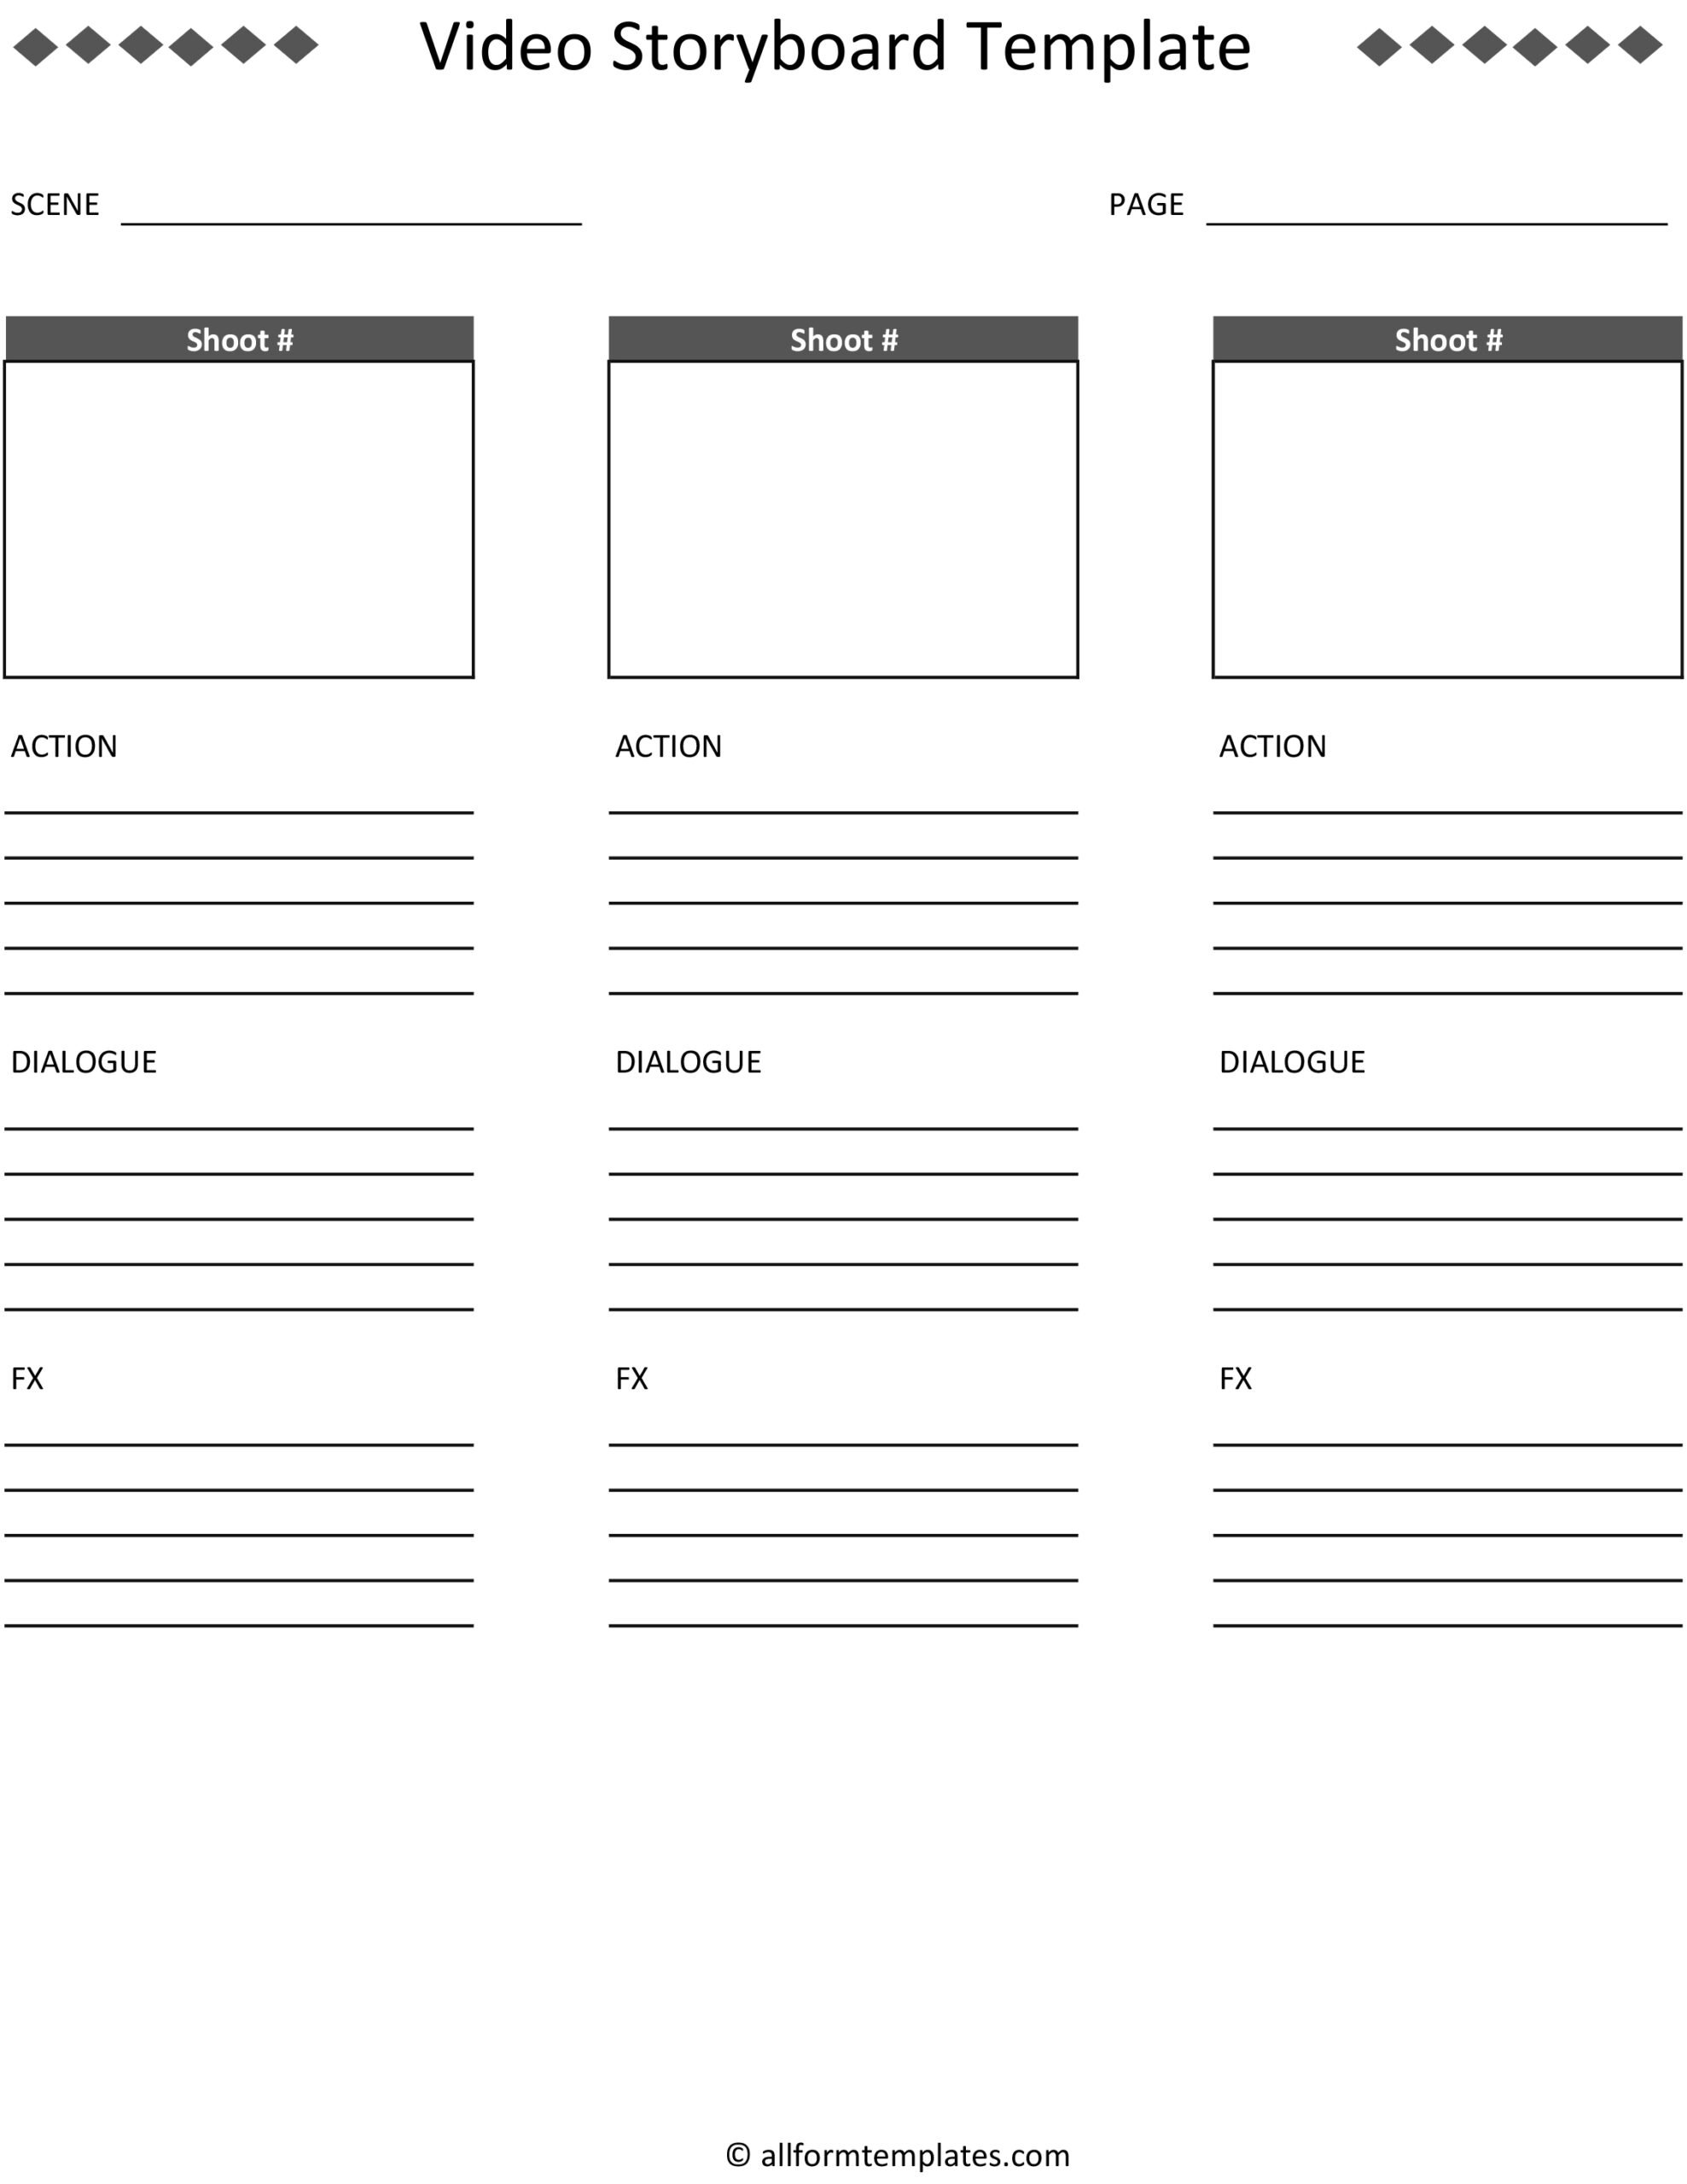 Video-Storyboard-Template-HD